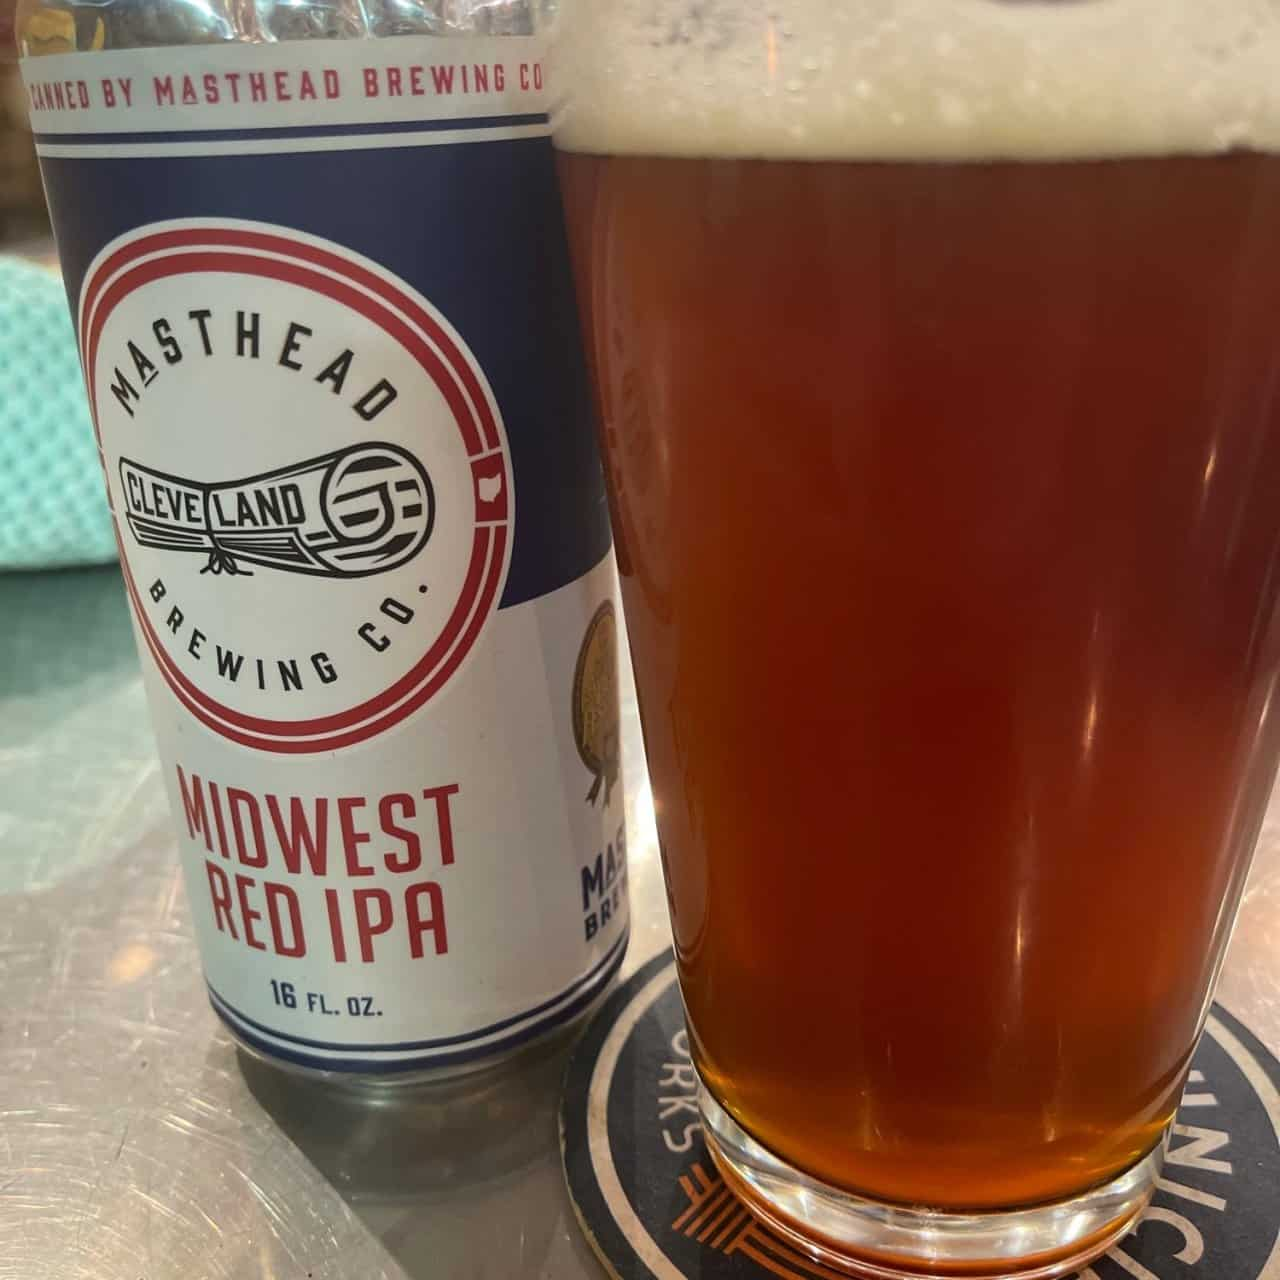 Midwest Red IPA